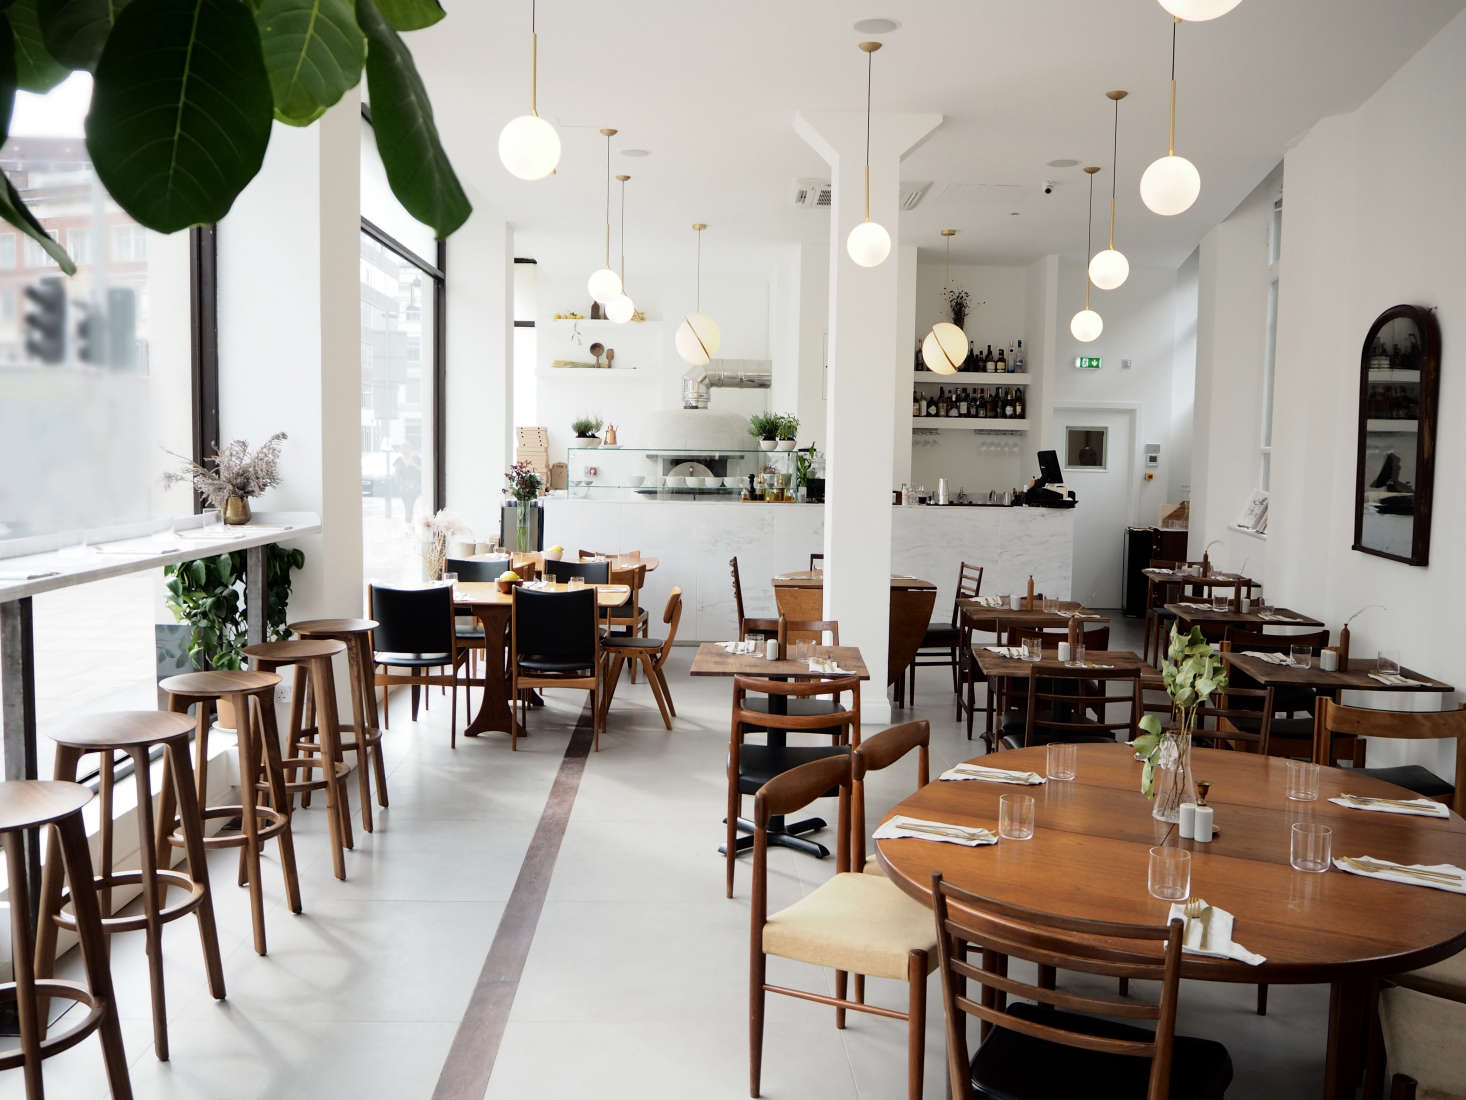 Old napoli in modern london o ver restaurant by quiet studios the restaurant a gut remodel is built out with stone floors and bright white reviewsmspy